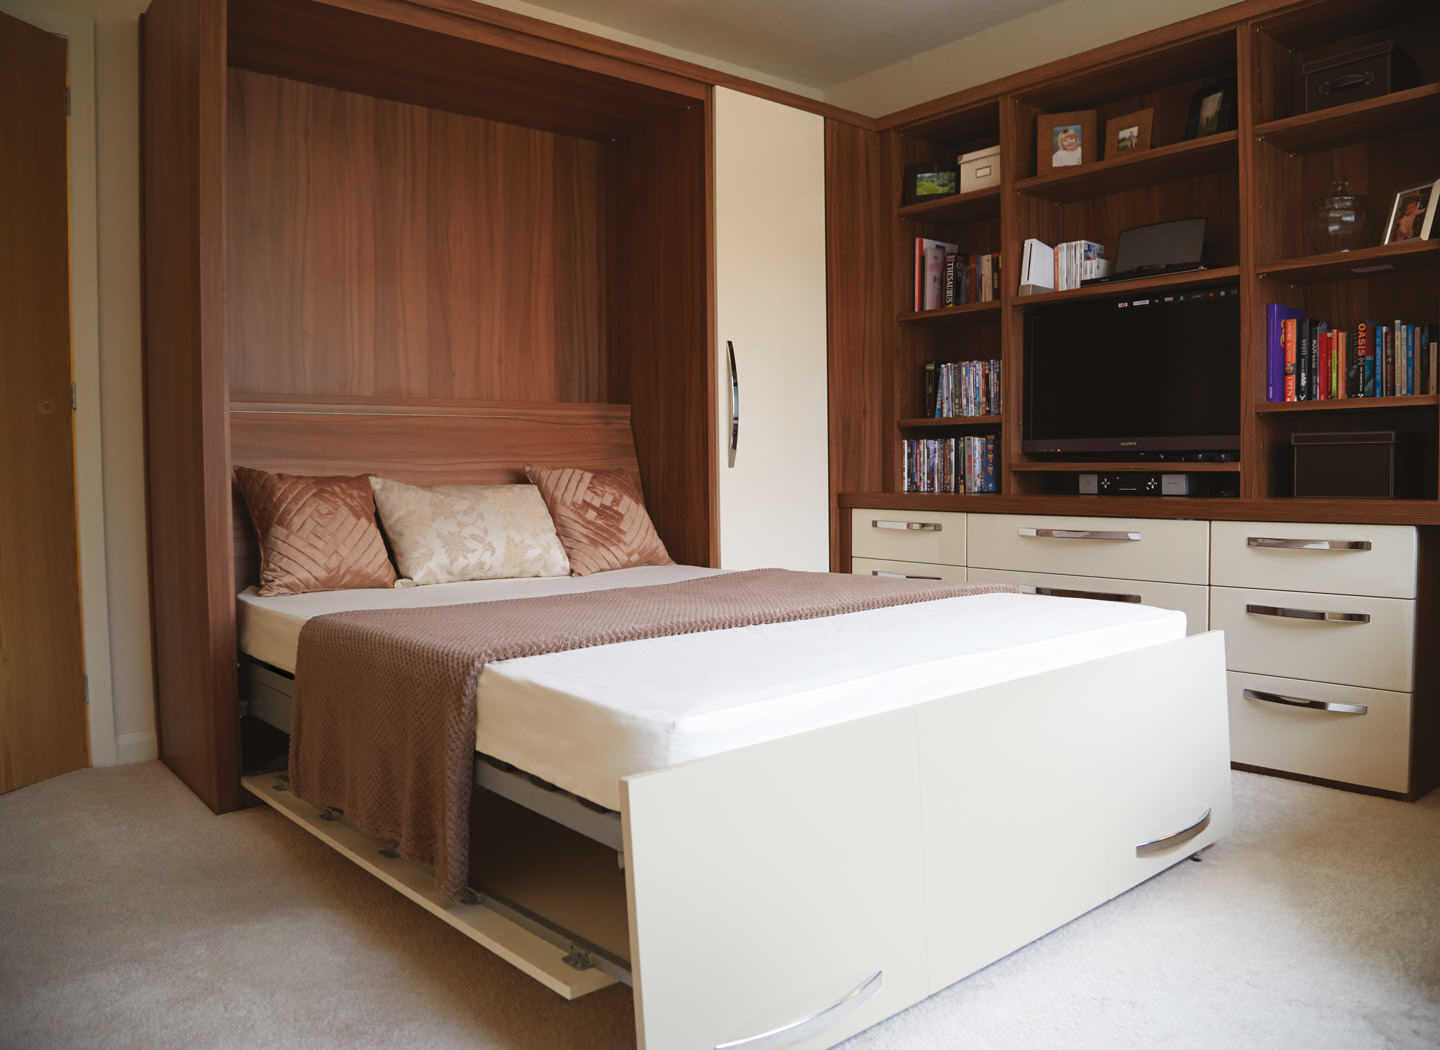 bed in office. case study showing pulled down wall bed in bedroom office